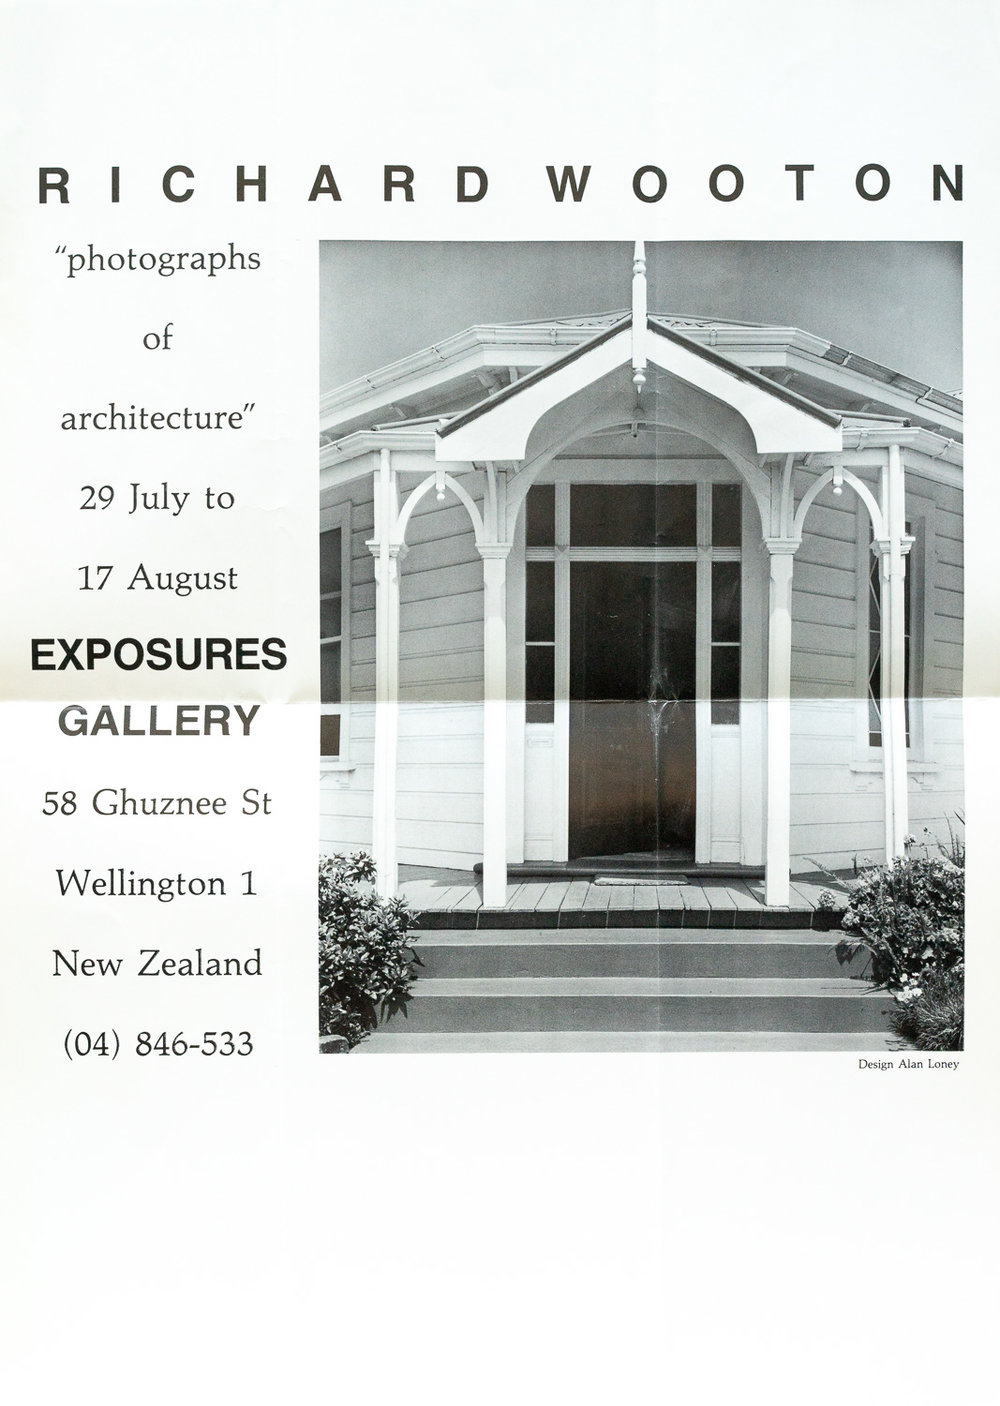 Richard WottonPhotographs of Architecture29 July – 17 August, 1985. Design by Alan Loney(note: Wotton is mis-spelled on the poster)